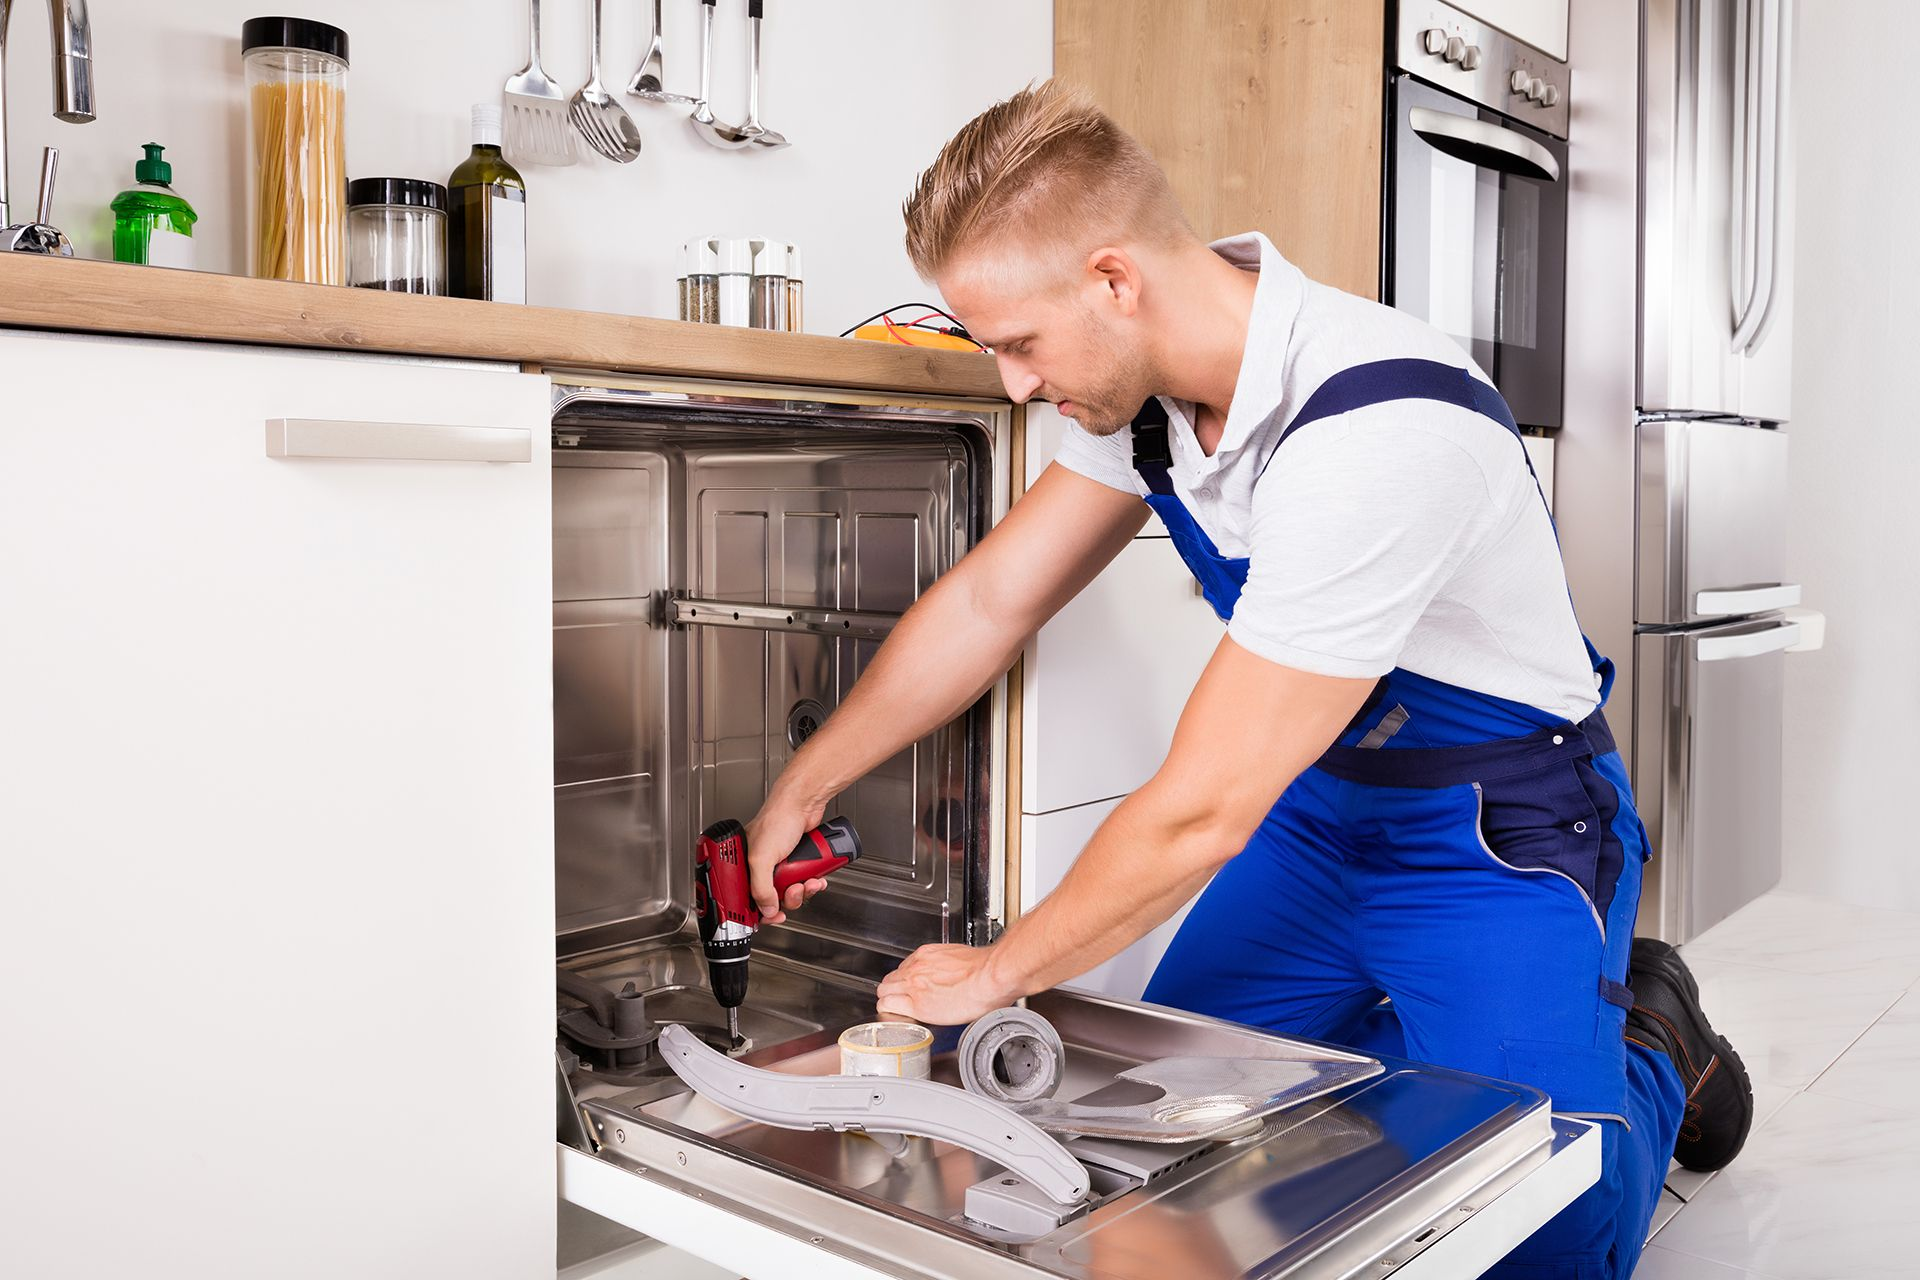 Home appliance repairs can be a daunting task to undertake